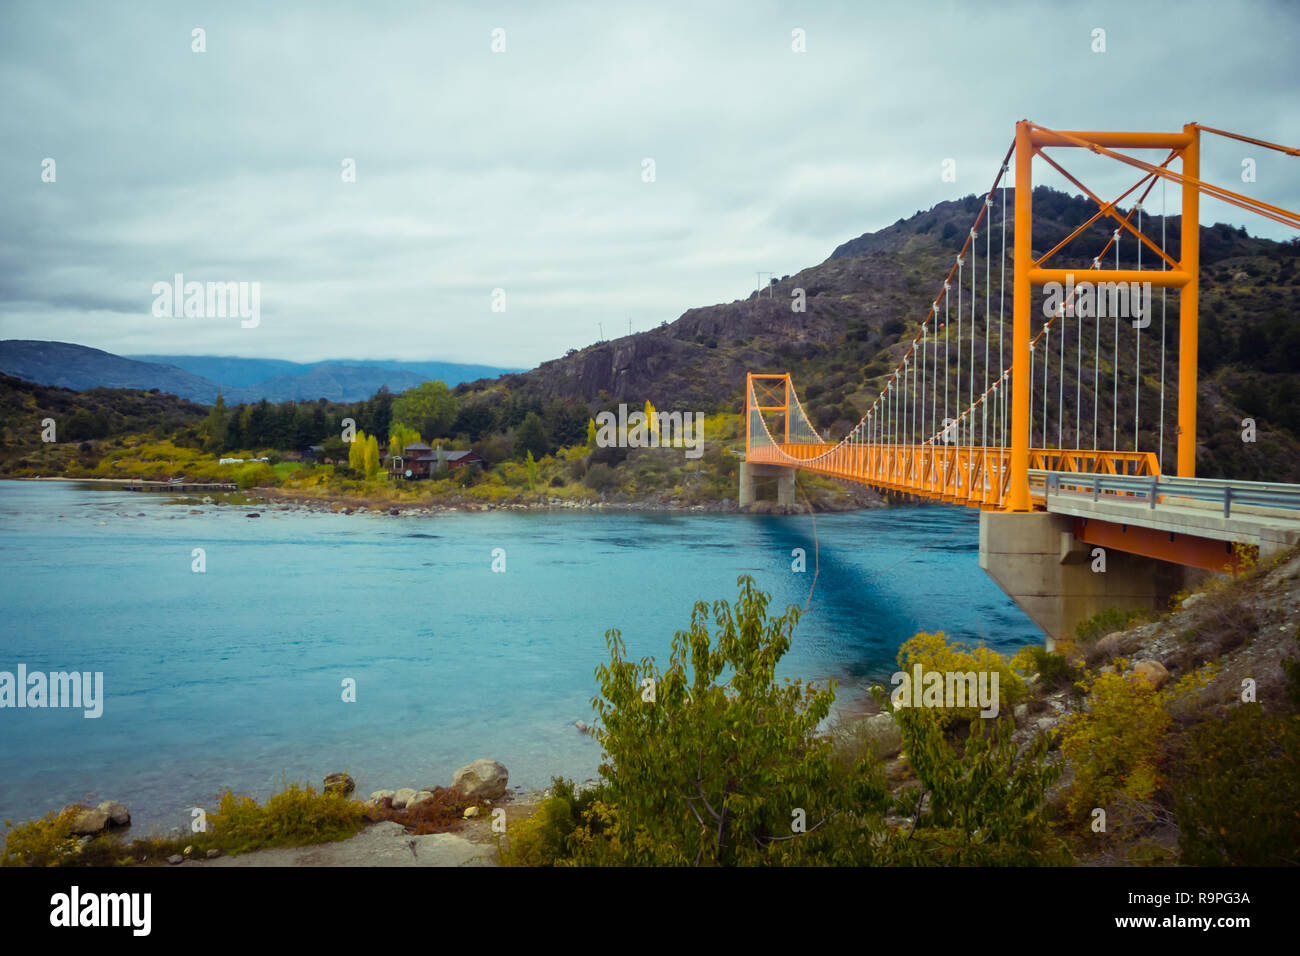 Red suspension bridge over the water runoff of General Carrera Lake, near Lake Bertrand, Puerto Tranquilo, Chile Chico, Aysen, Chile - Stock Image